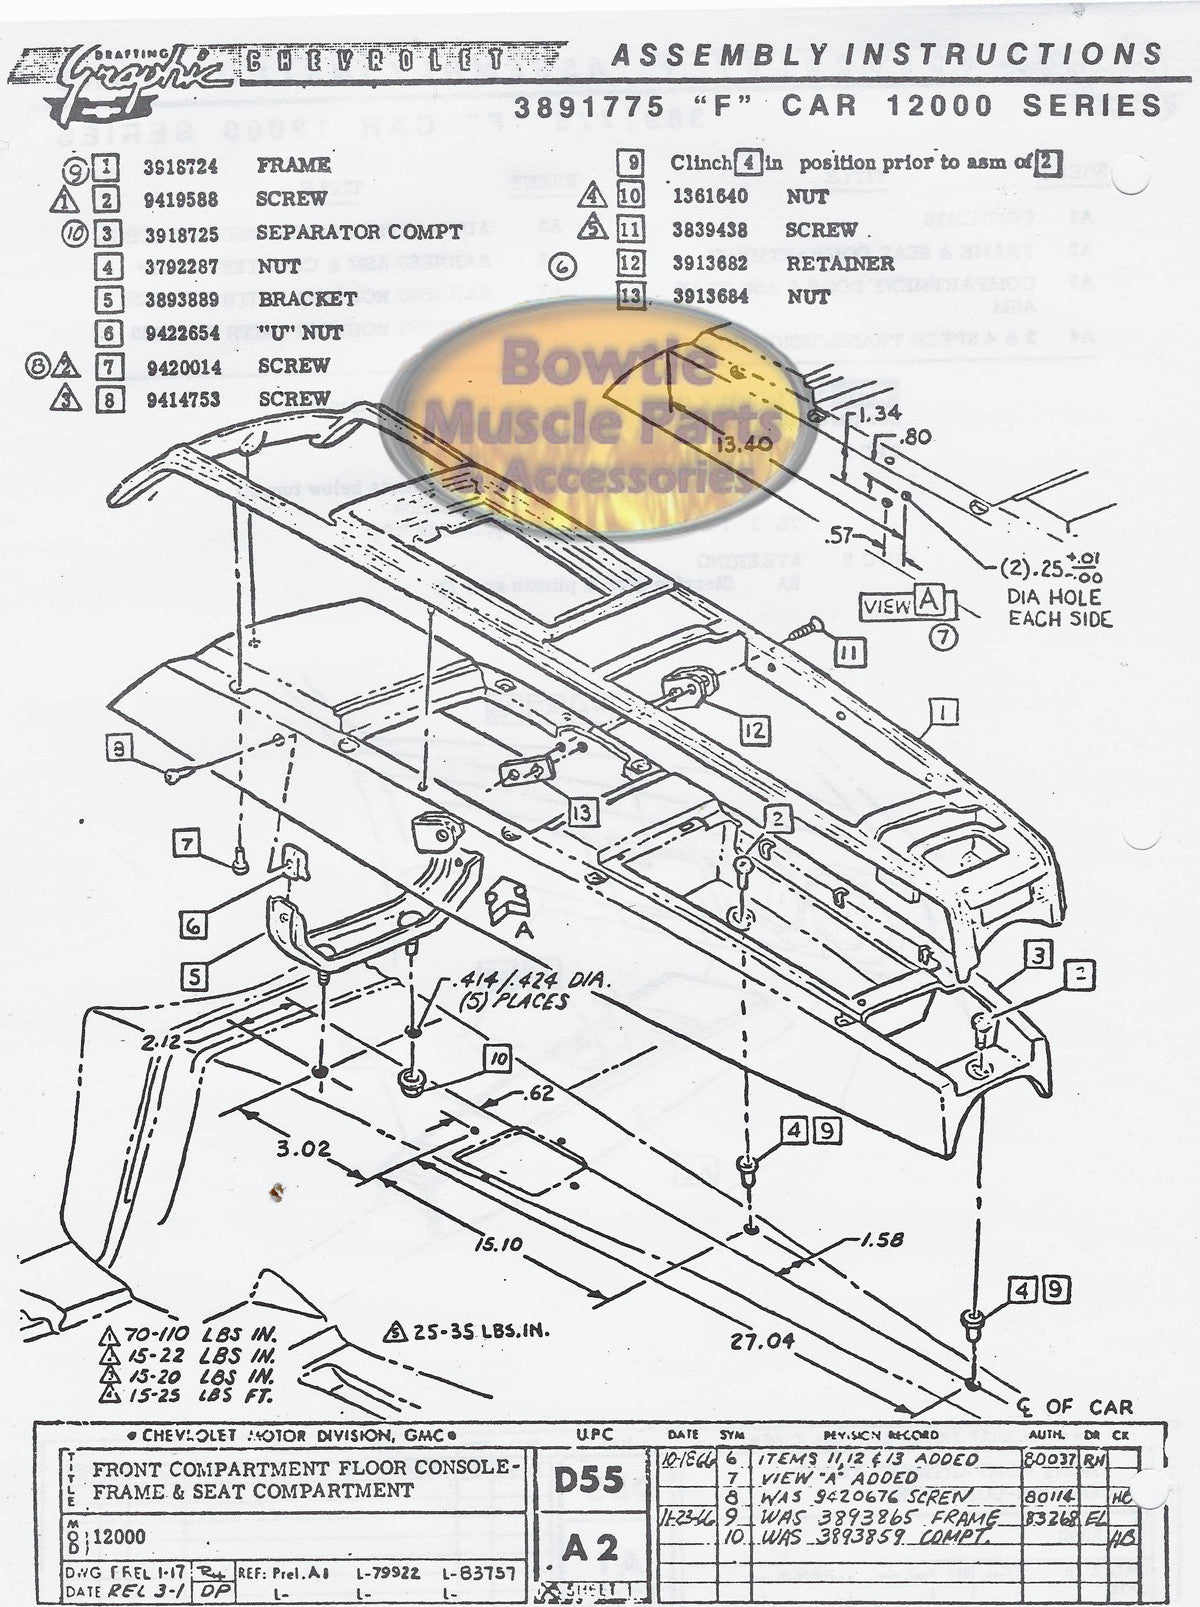 1969 69 camaro factory assembly manual z28 ss rs